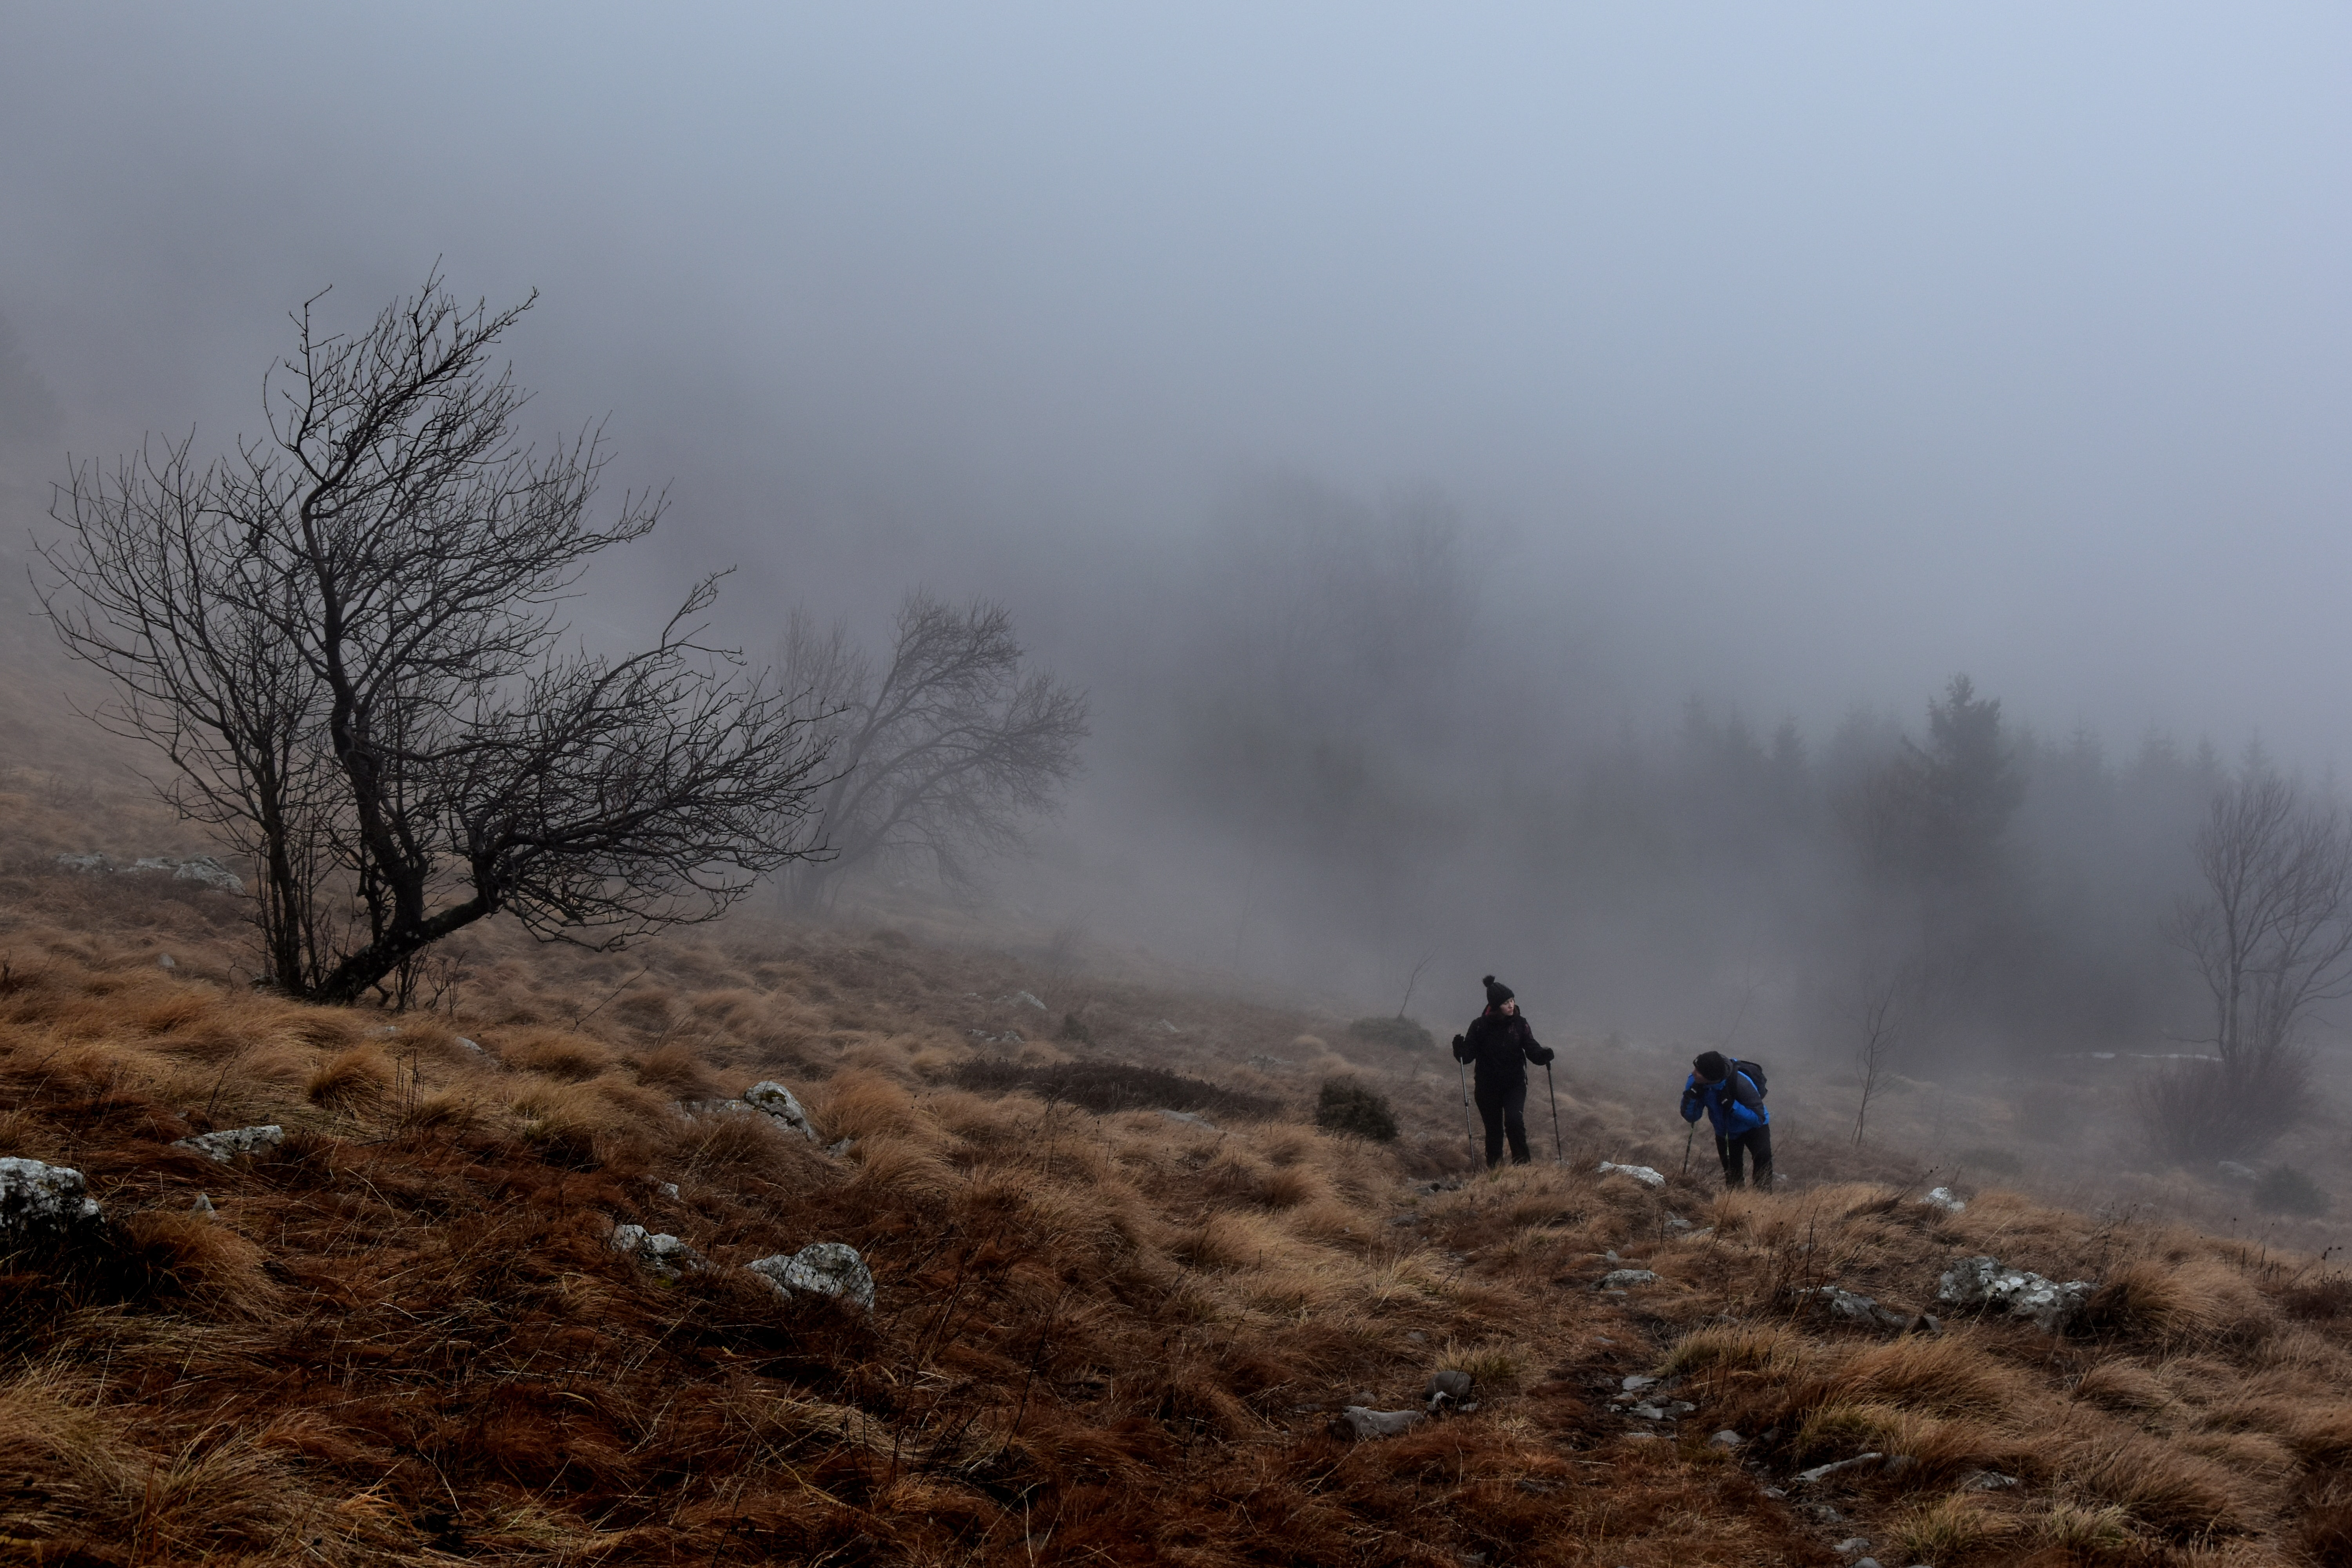 People hike over hills on a foggy, winter walk